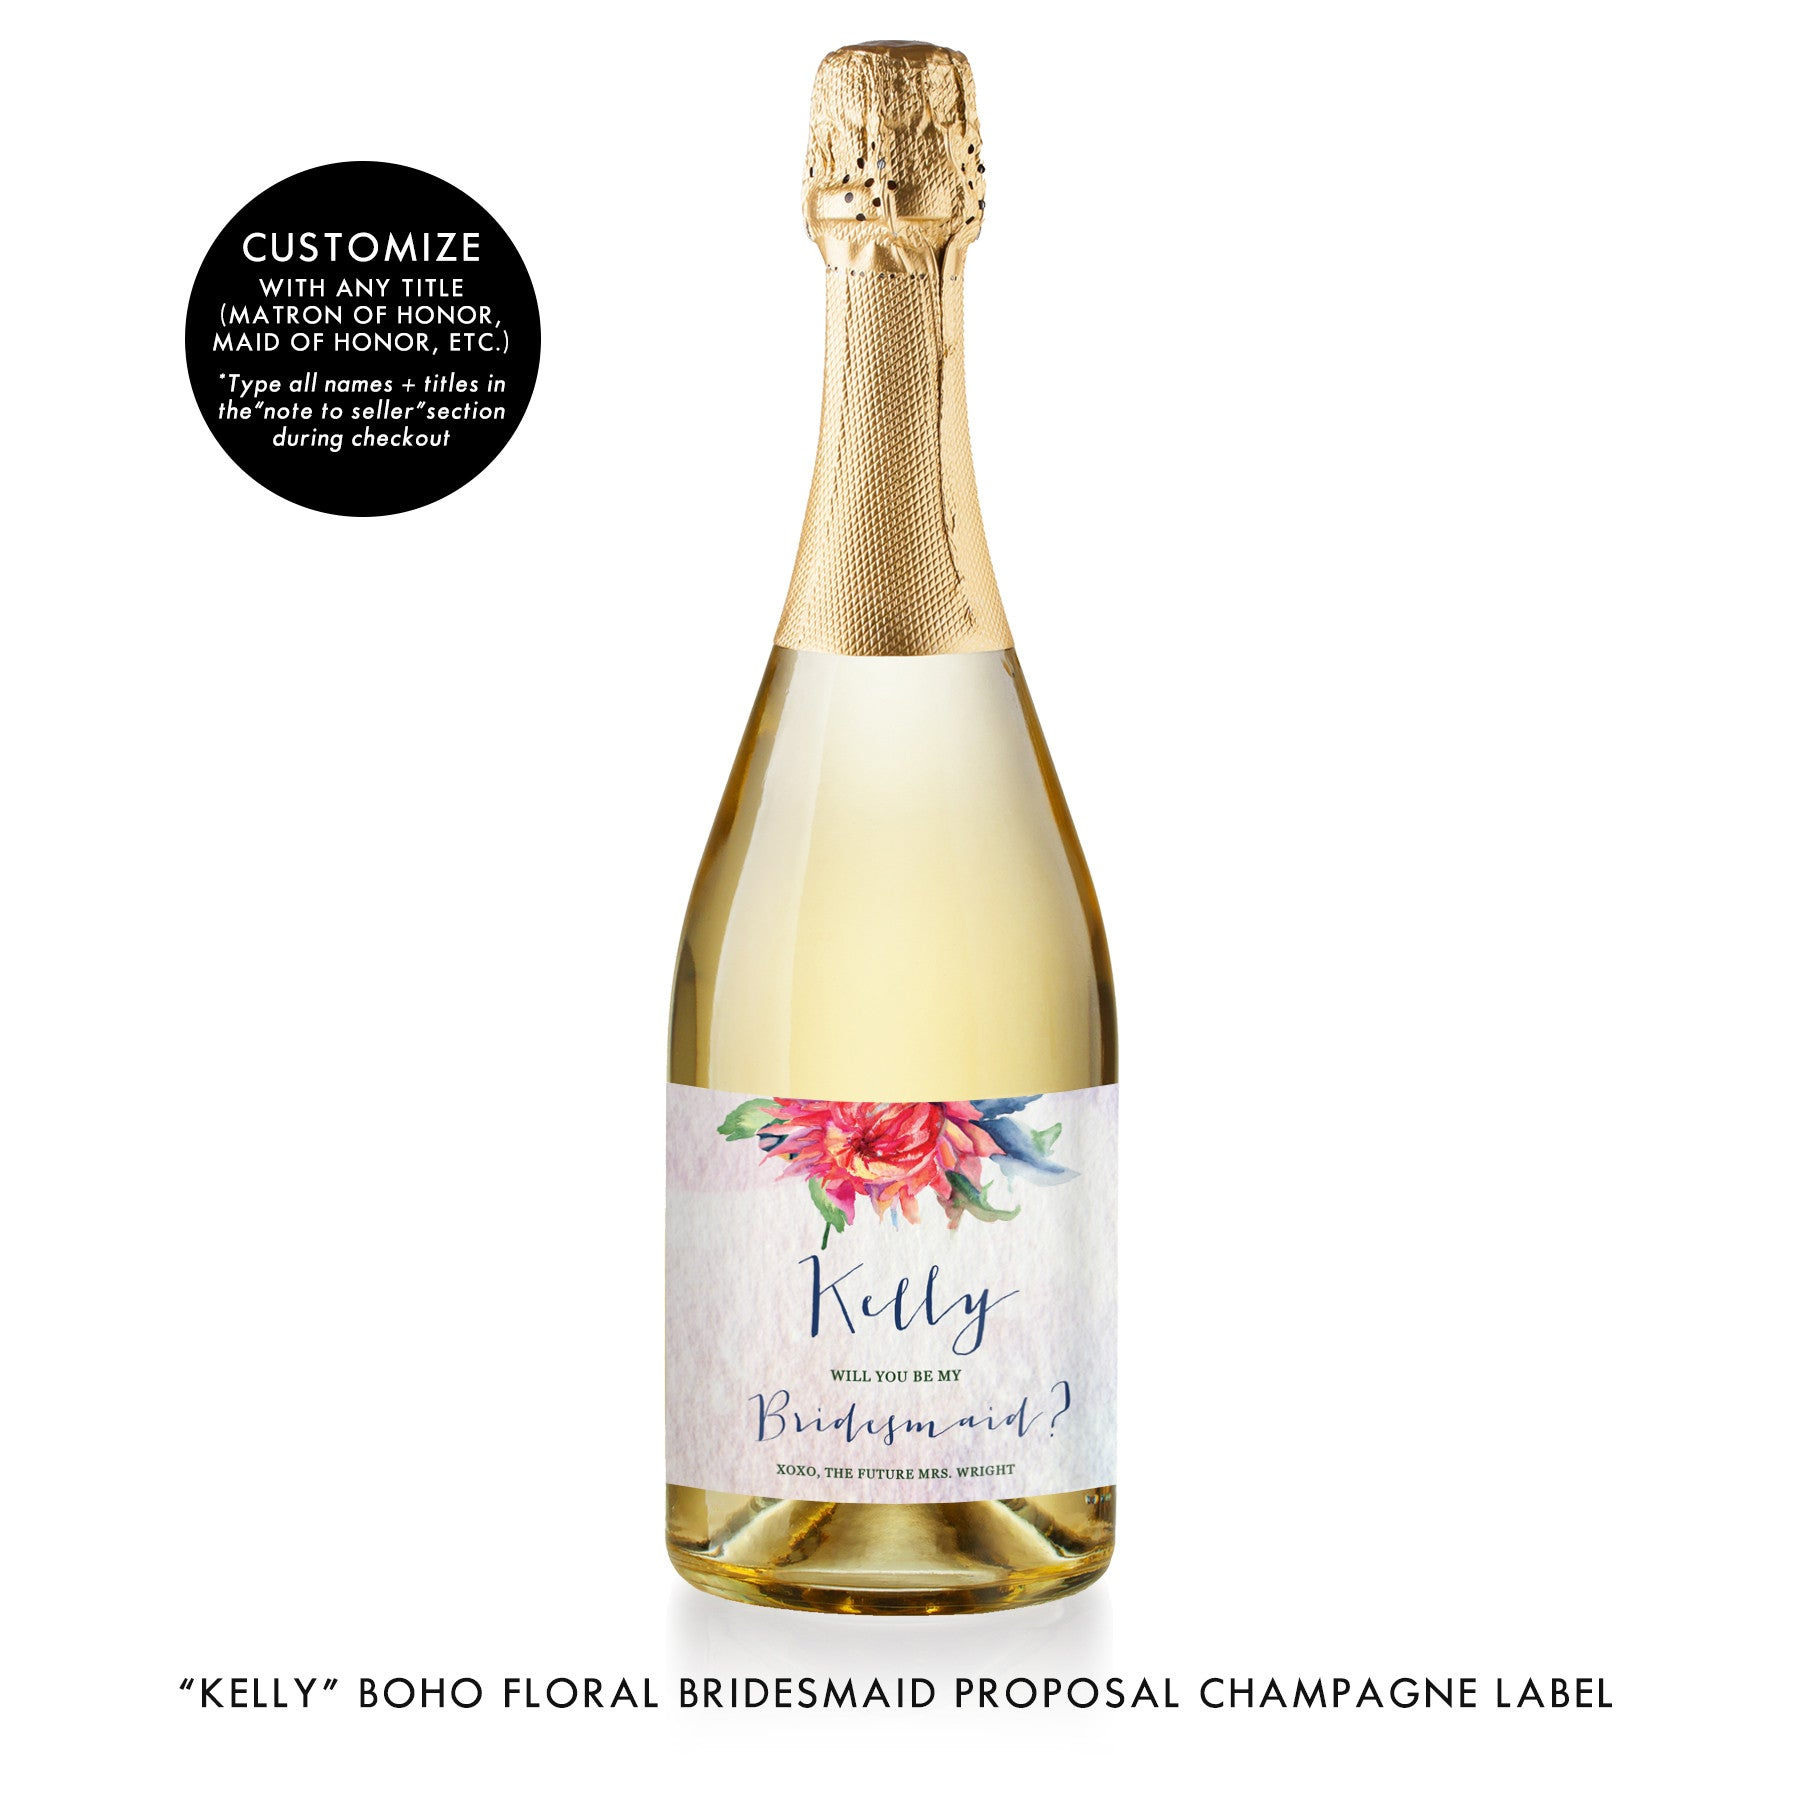 """Kelly"" Boho Floral Bridesmaid Proposal Champagne Labels"